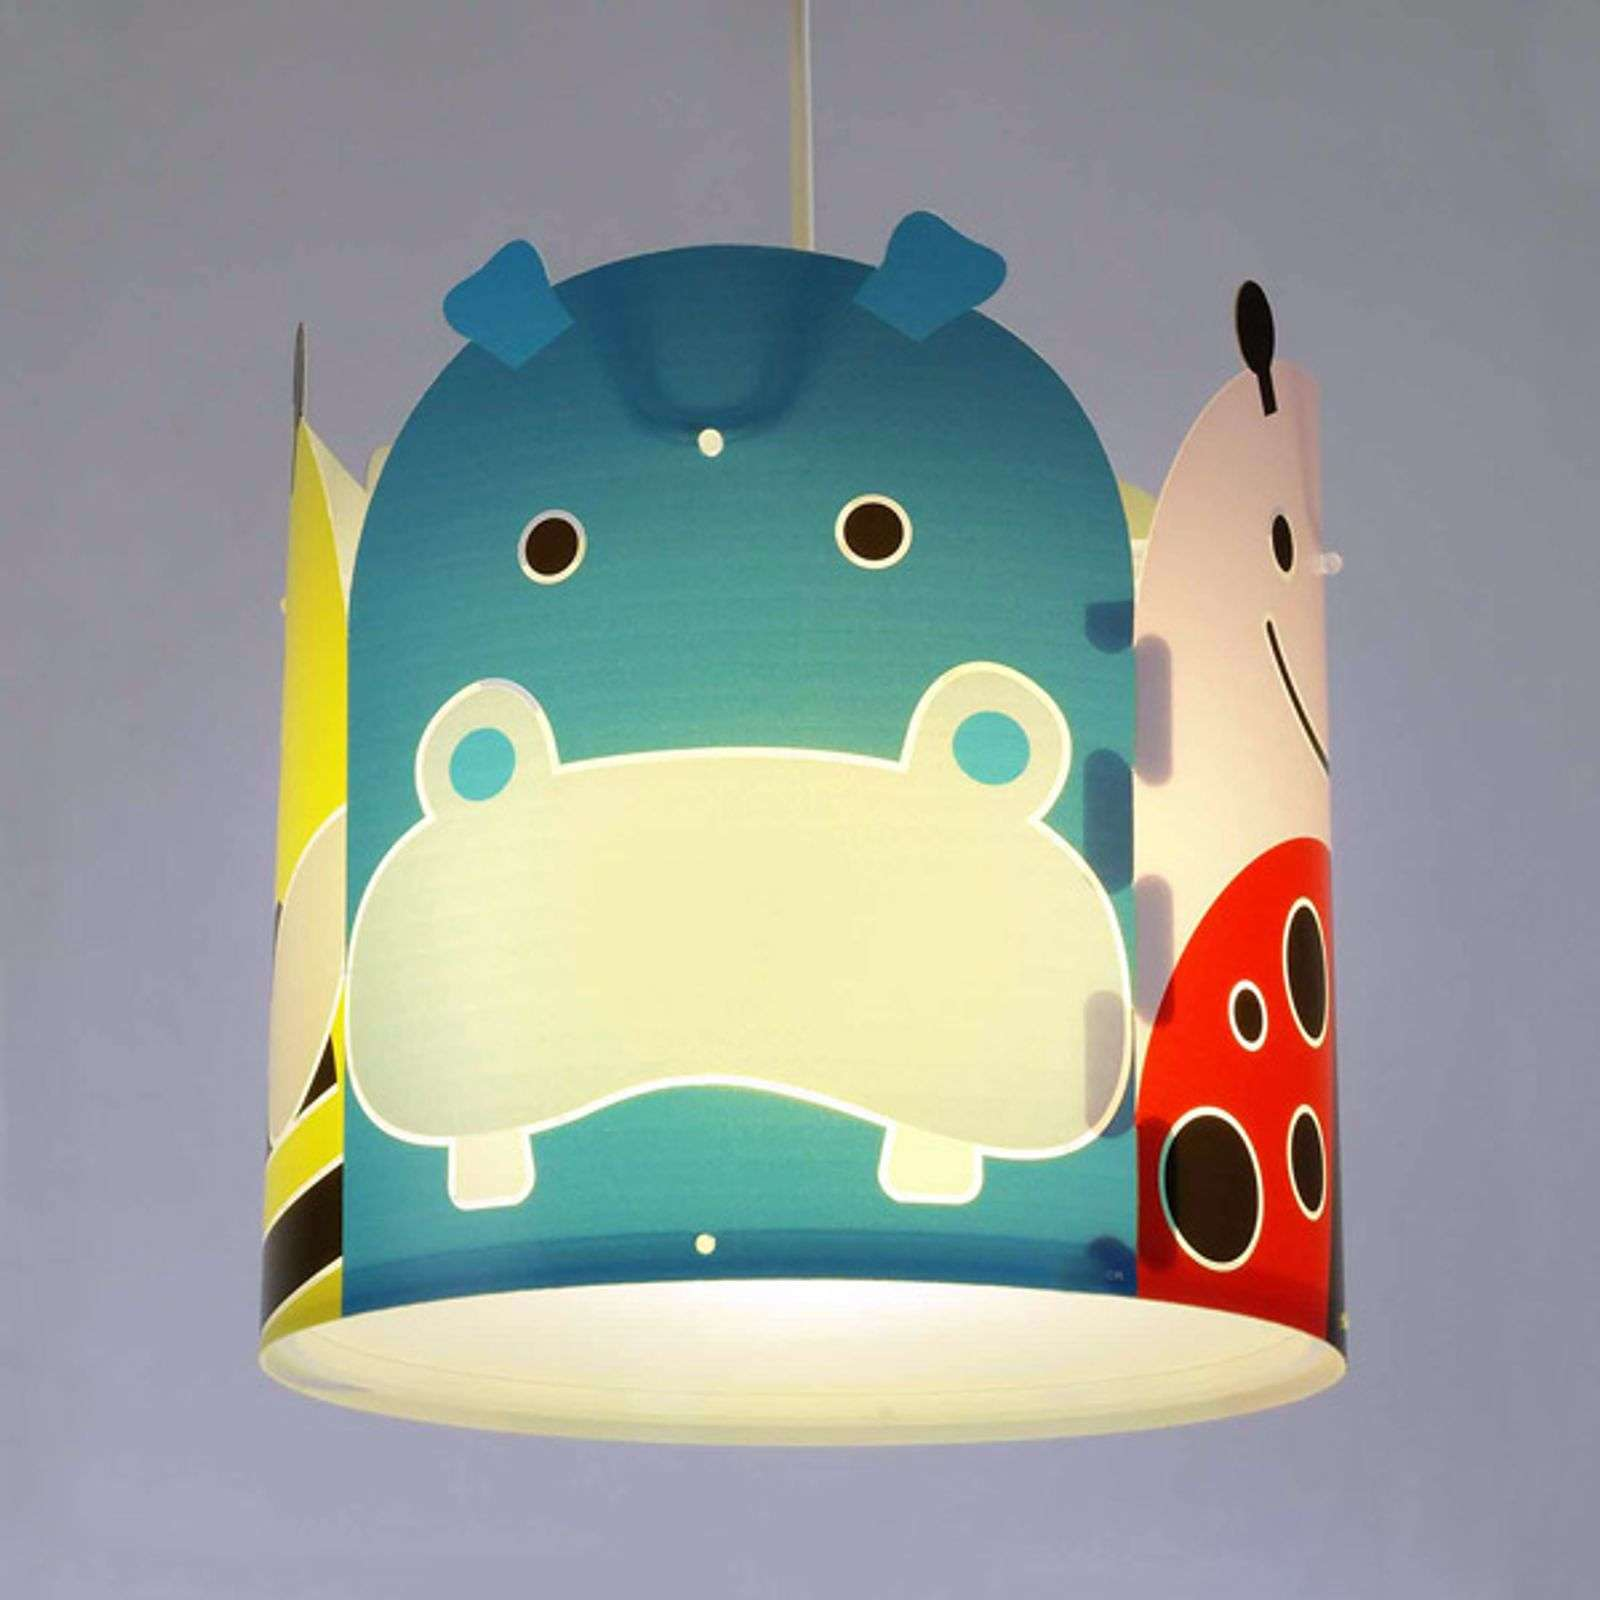 Lampada sospesa Big Friends con animali